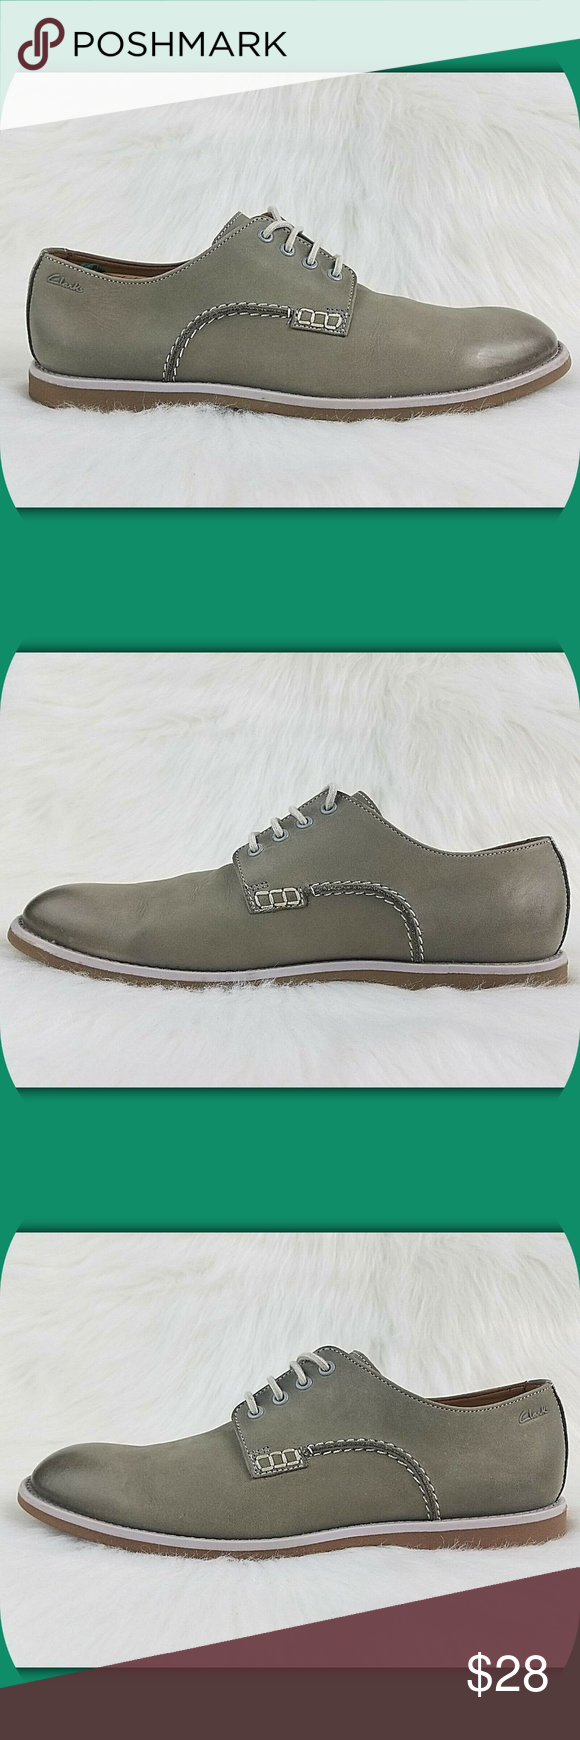 f9487974a0c CLARKS Nubuck Leather Casual Plain Toe Derby Shoes CLARK S MEN S DERBY SHOES  Color  Light Olive